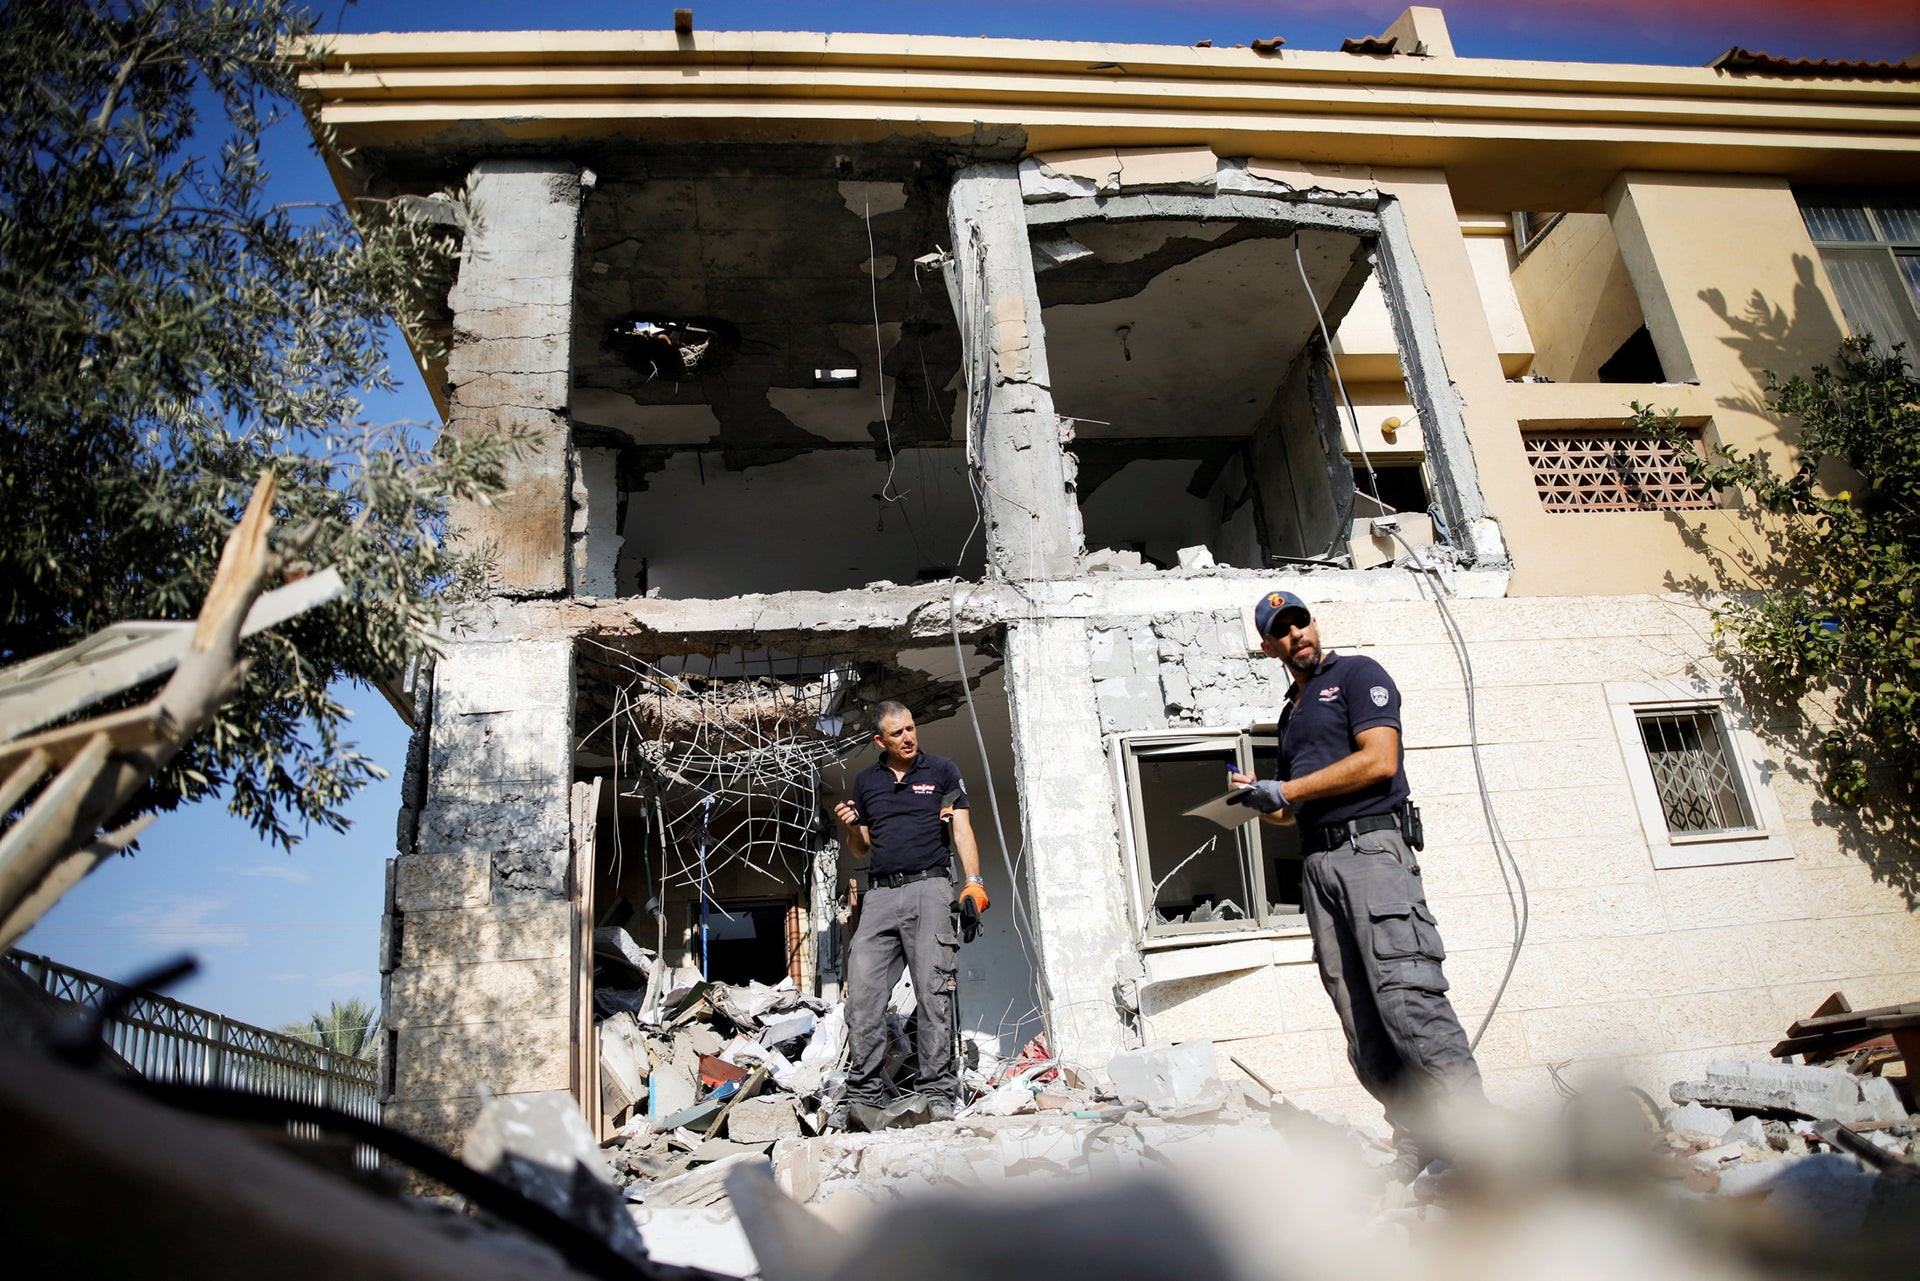 Israeli sappers work on a house that the Israeli military said was hit by a rocket fired from the Gaza Strip, in Beersheba, southern Israel October 17, 2018.